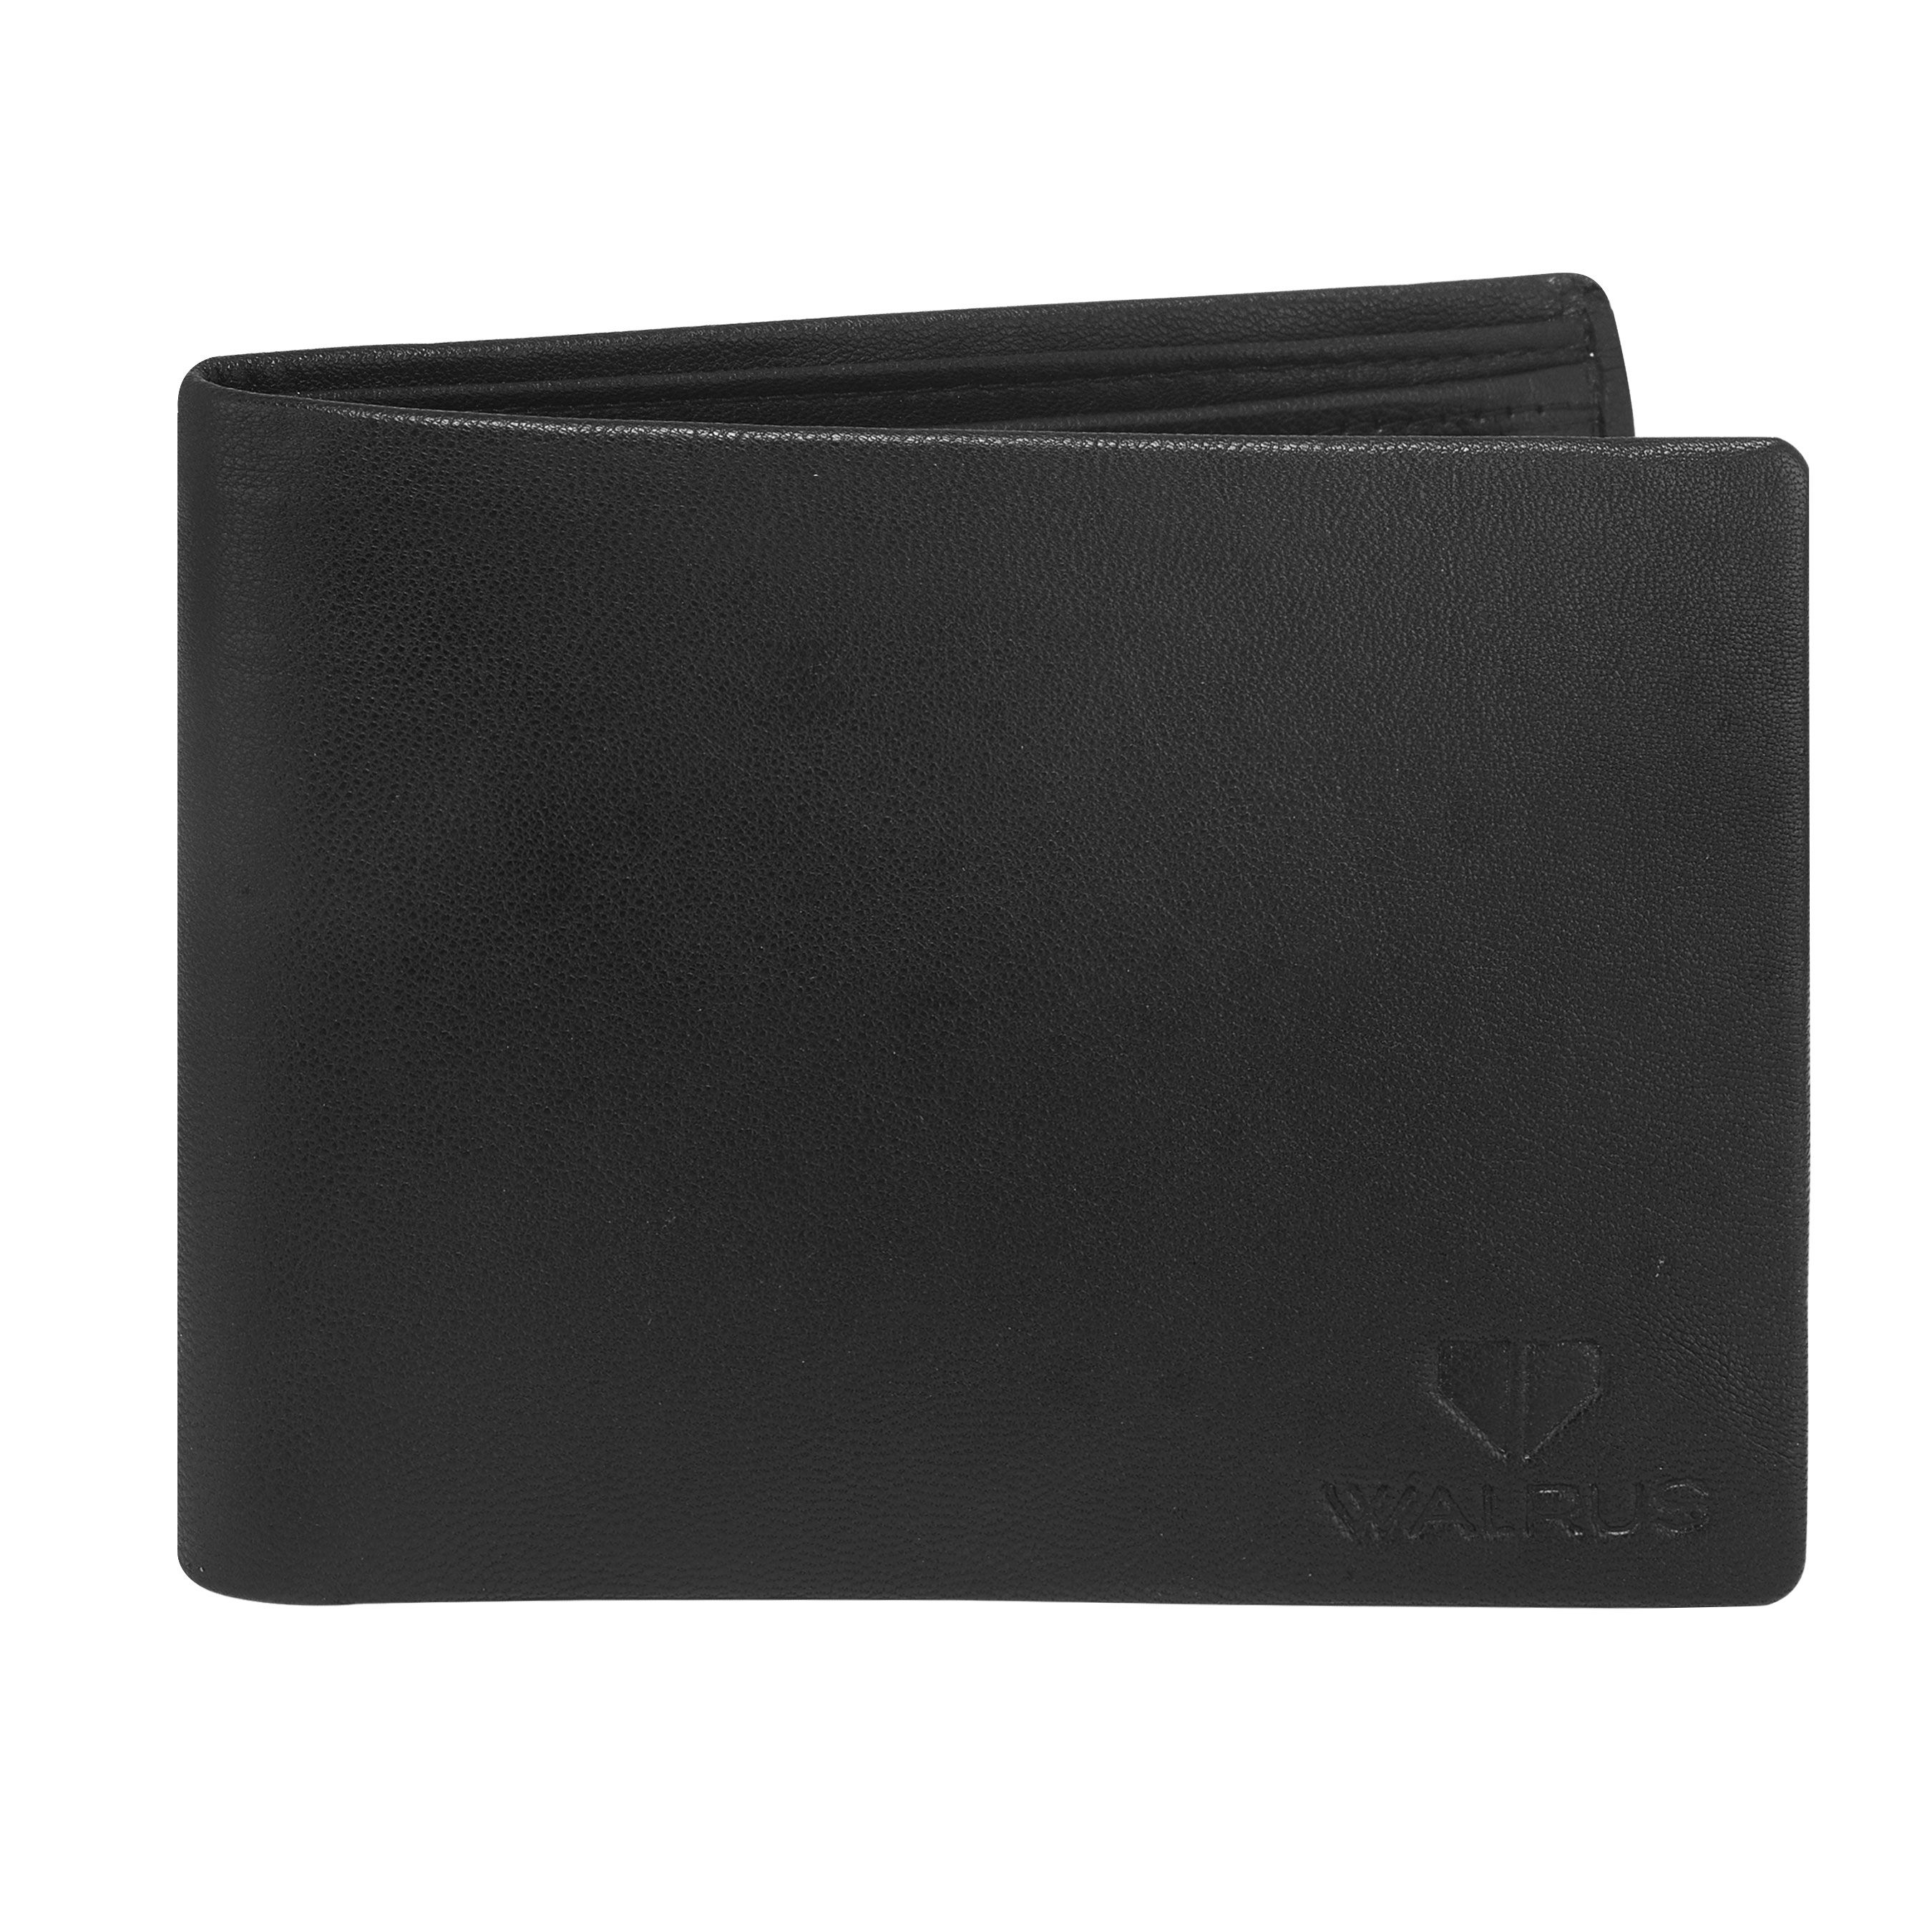 Walrus Imperial Black Color Men Genuine Leather Wallet (WW-IMP-02)